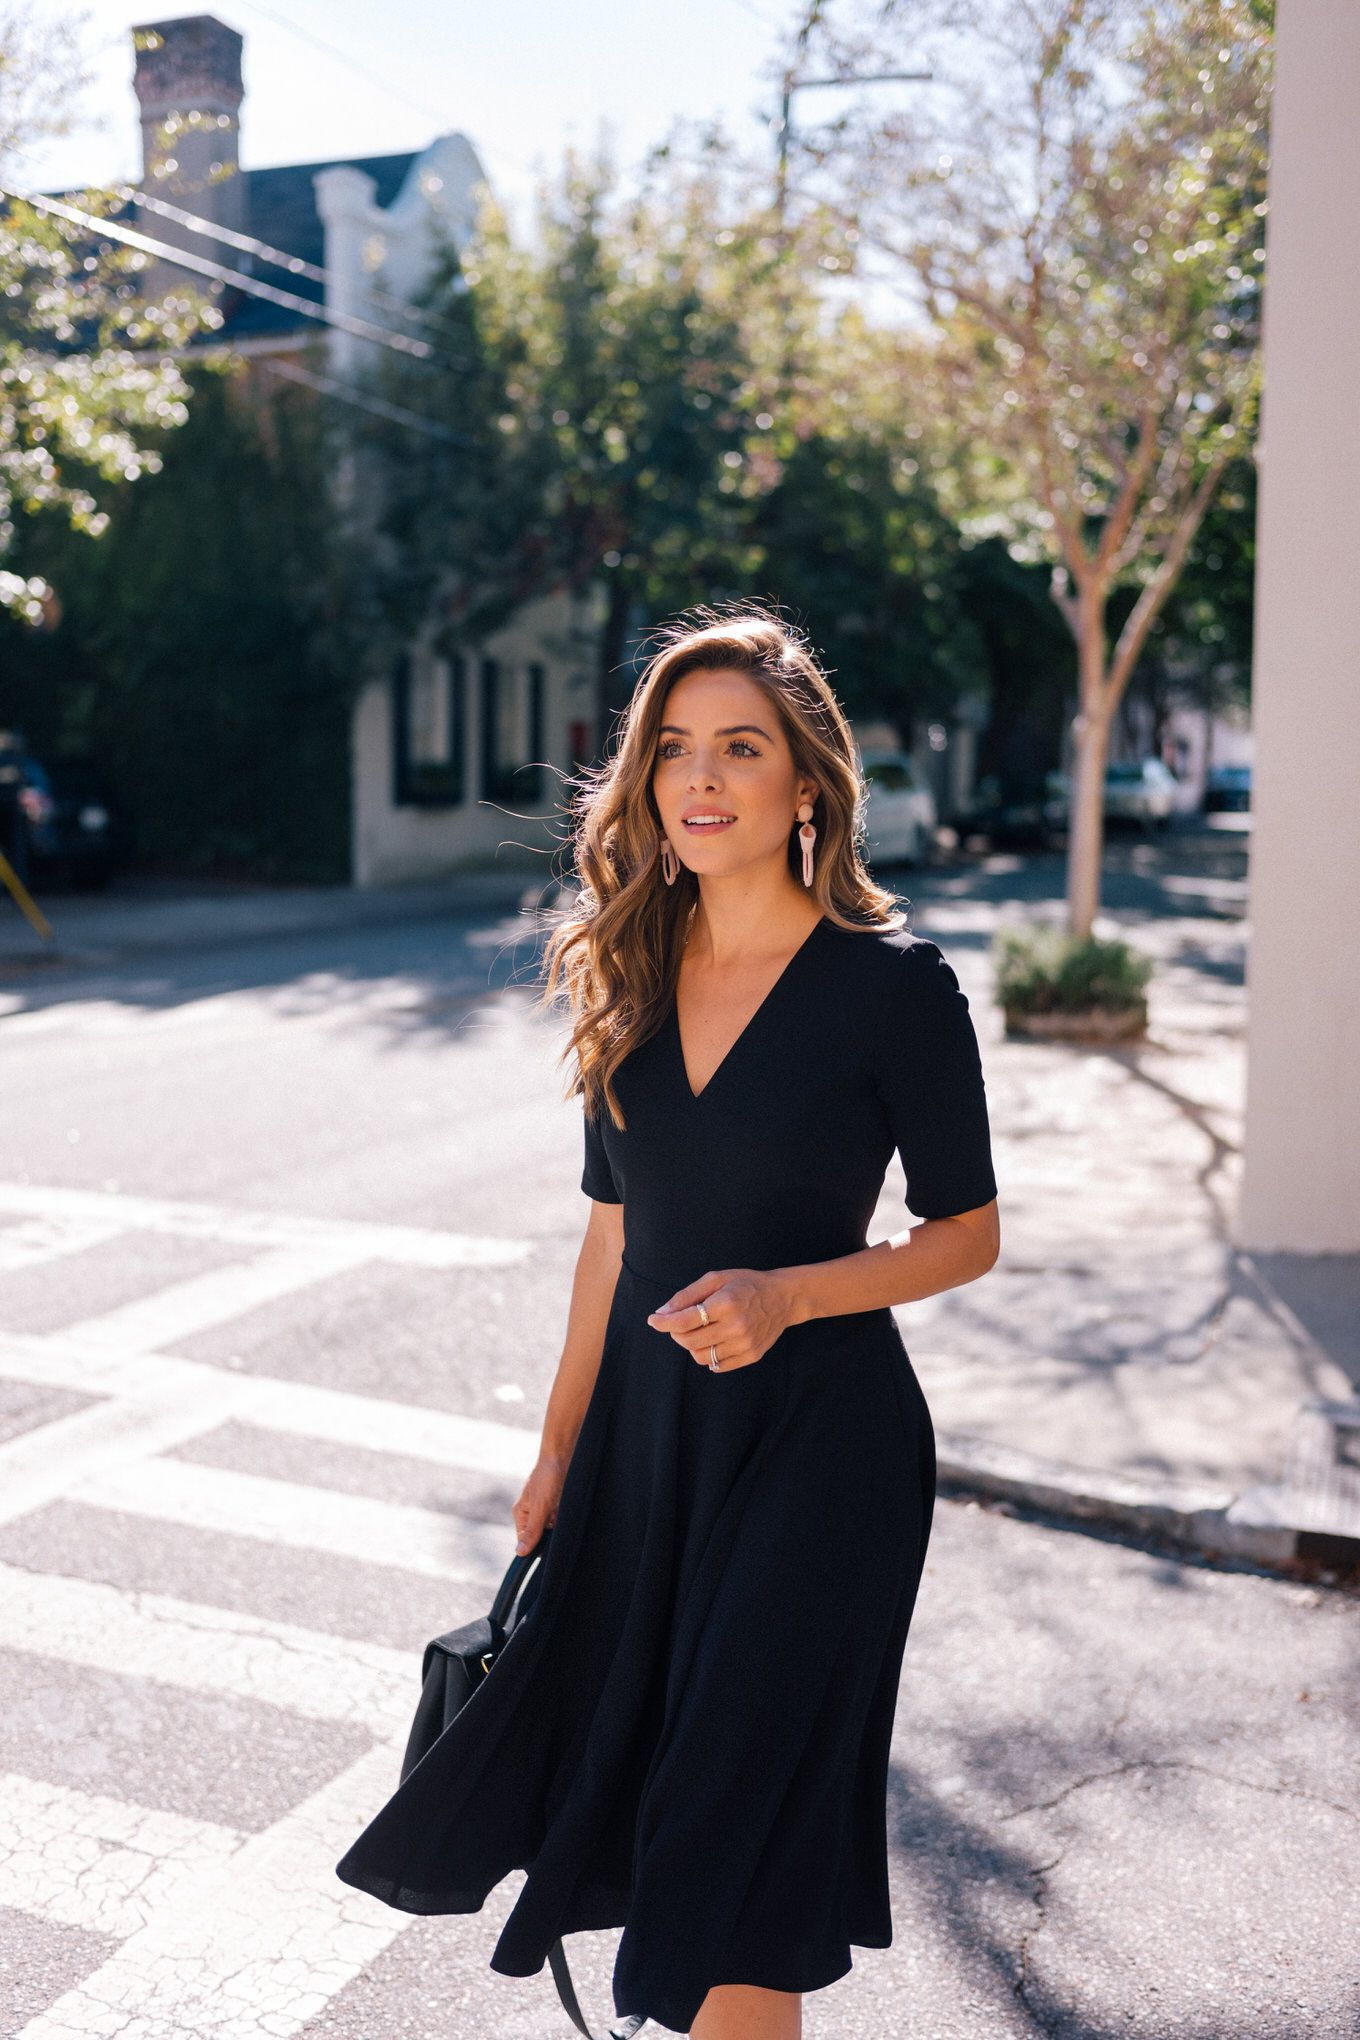 The Dress That Made Me Cry When I First Saw It - Gal Meets Glam #blackdresscasual